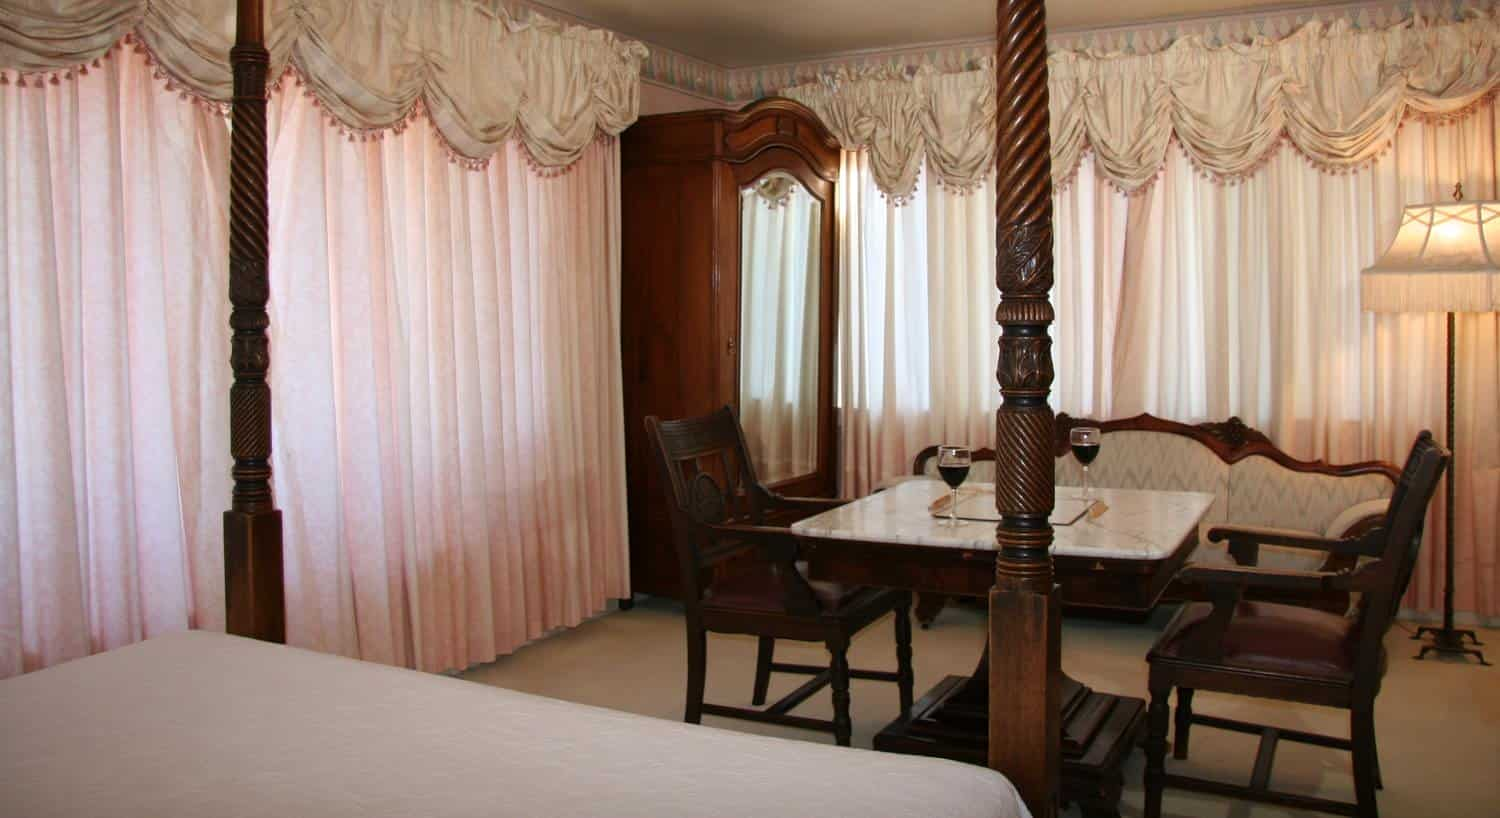 Empire guest room with pink sheer curtains, armoire with mirror, marble-top table with two chairs, settee and canopy bed